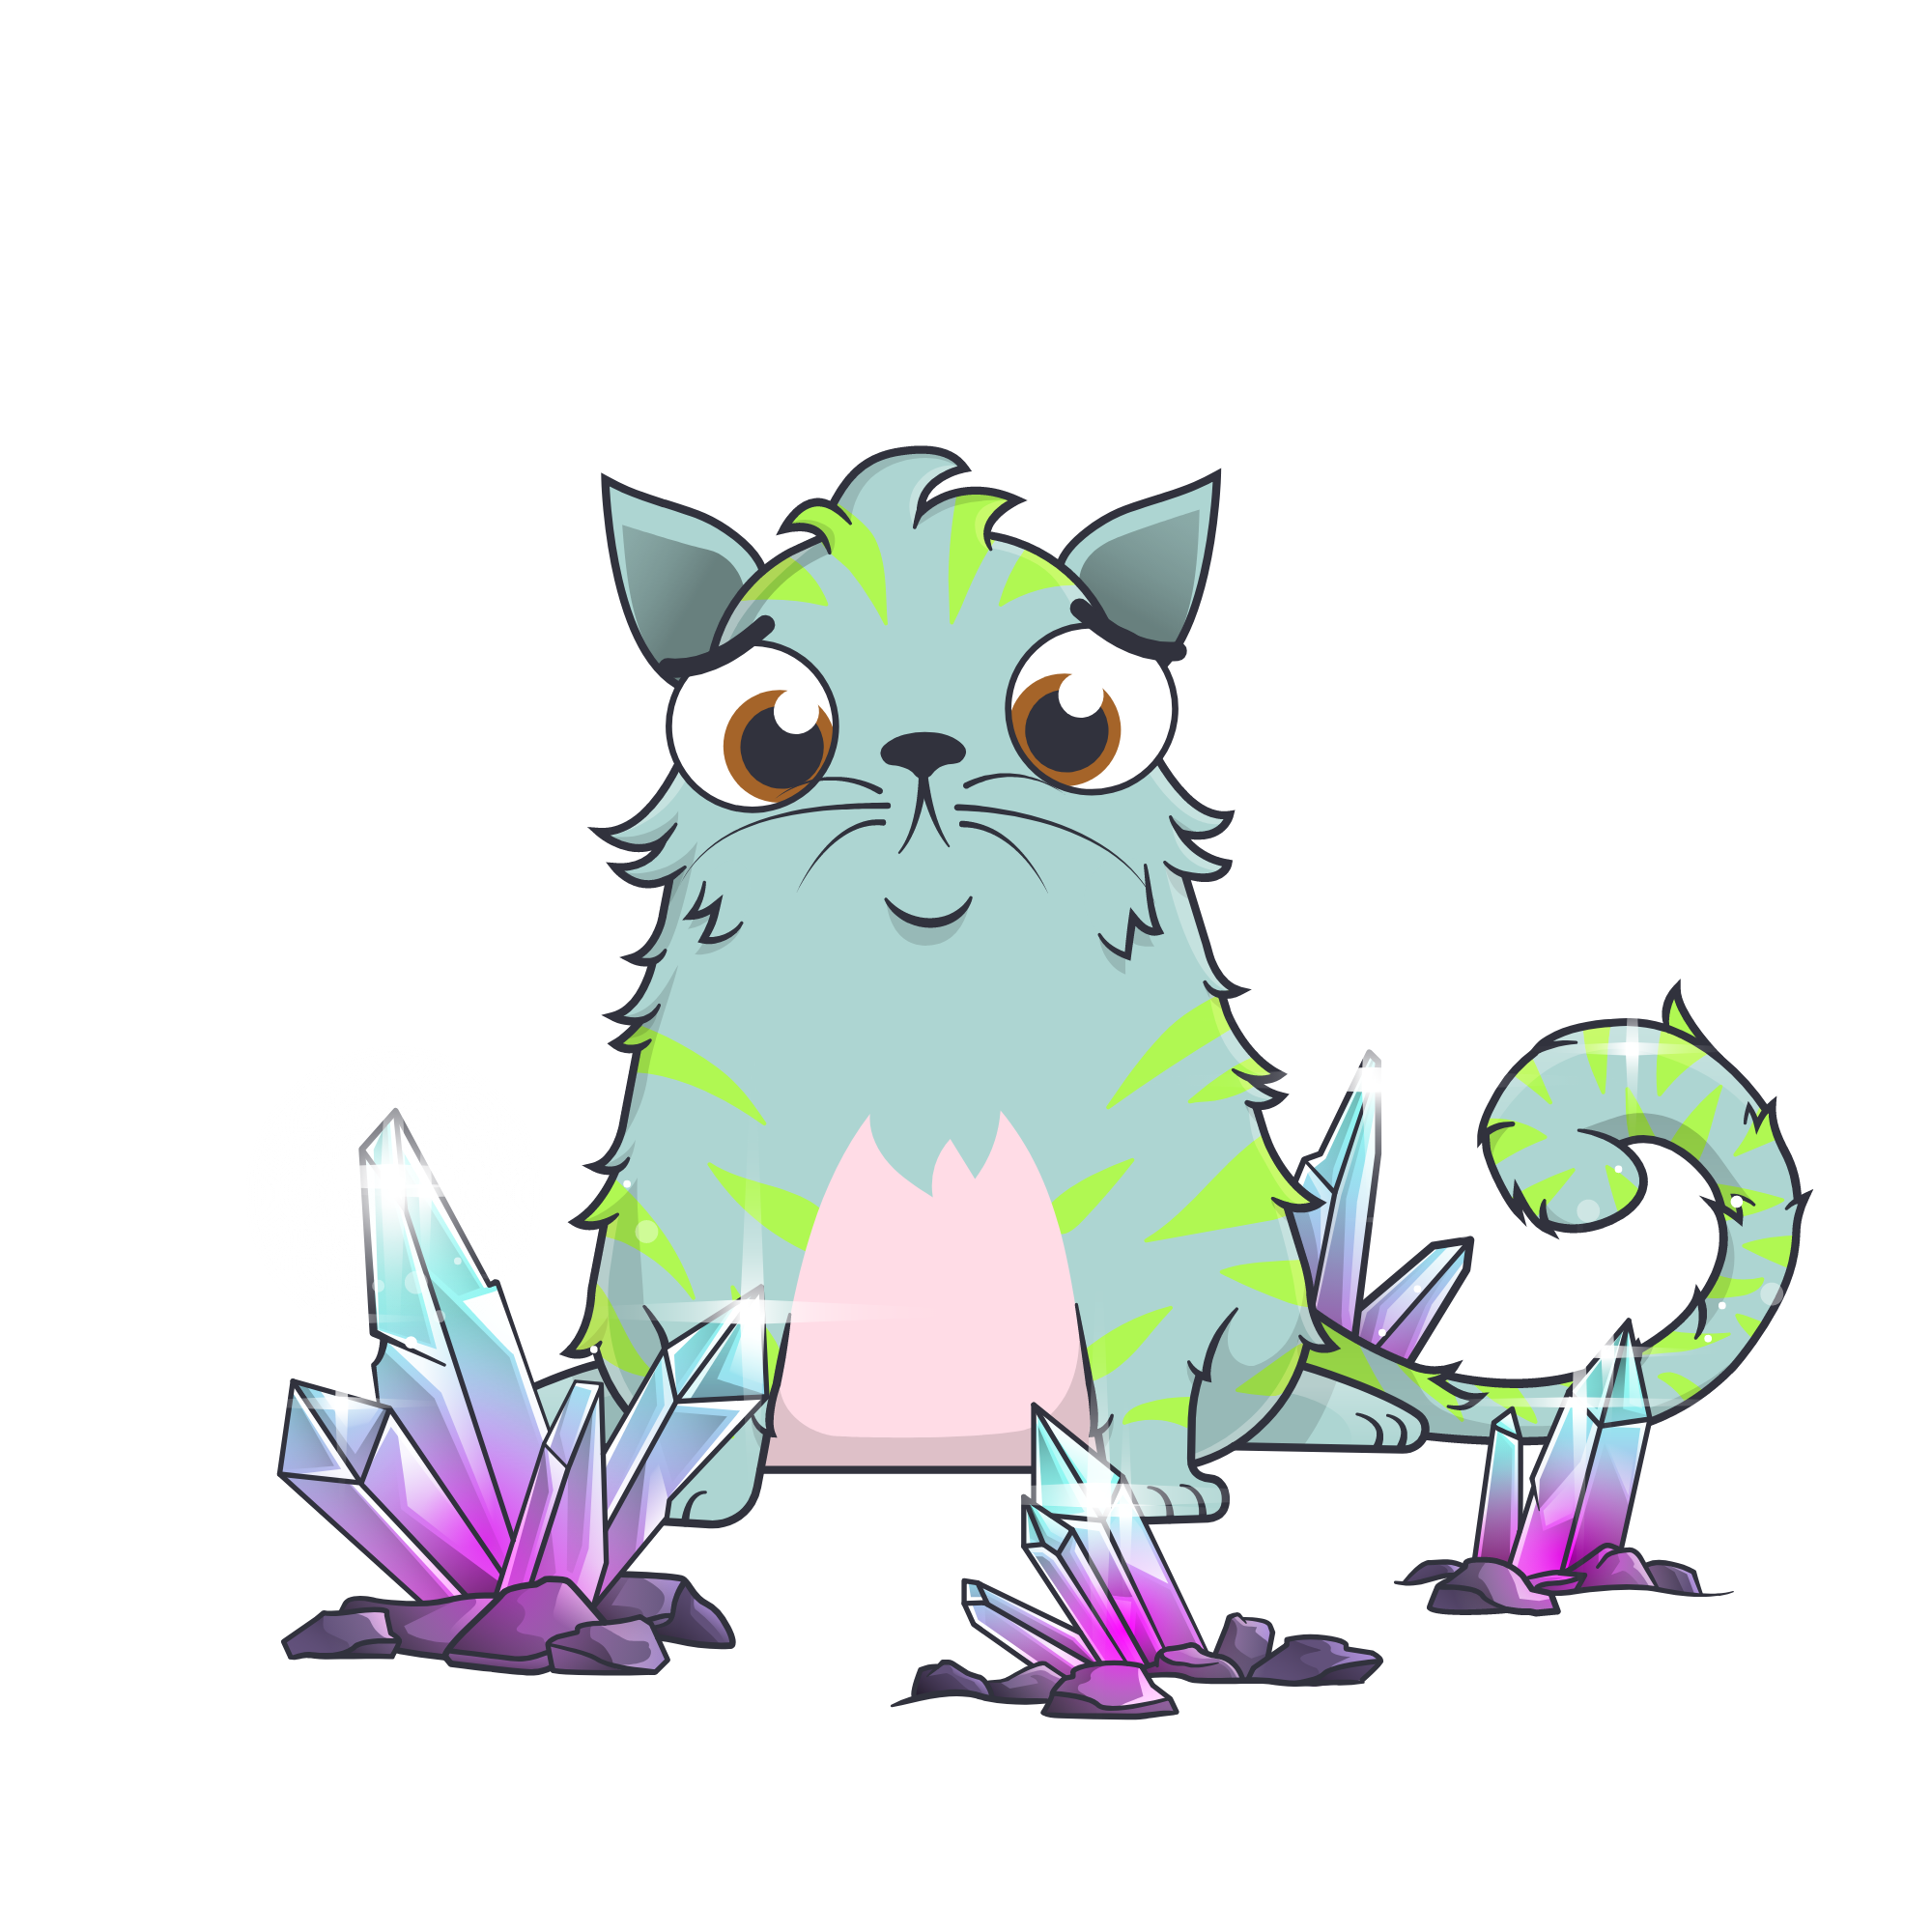 cryptokitty #1950481